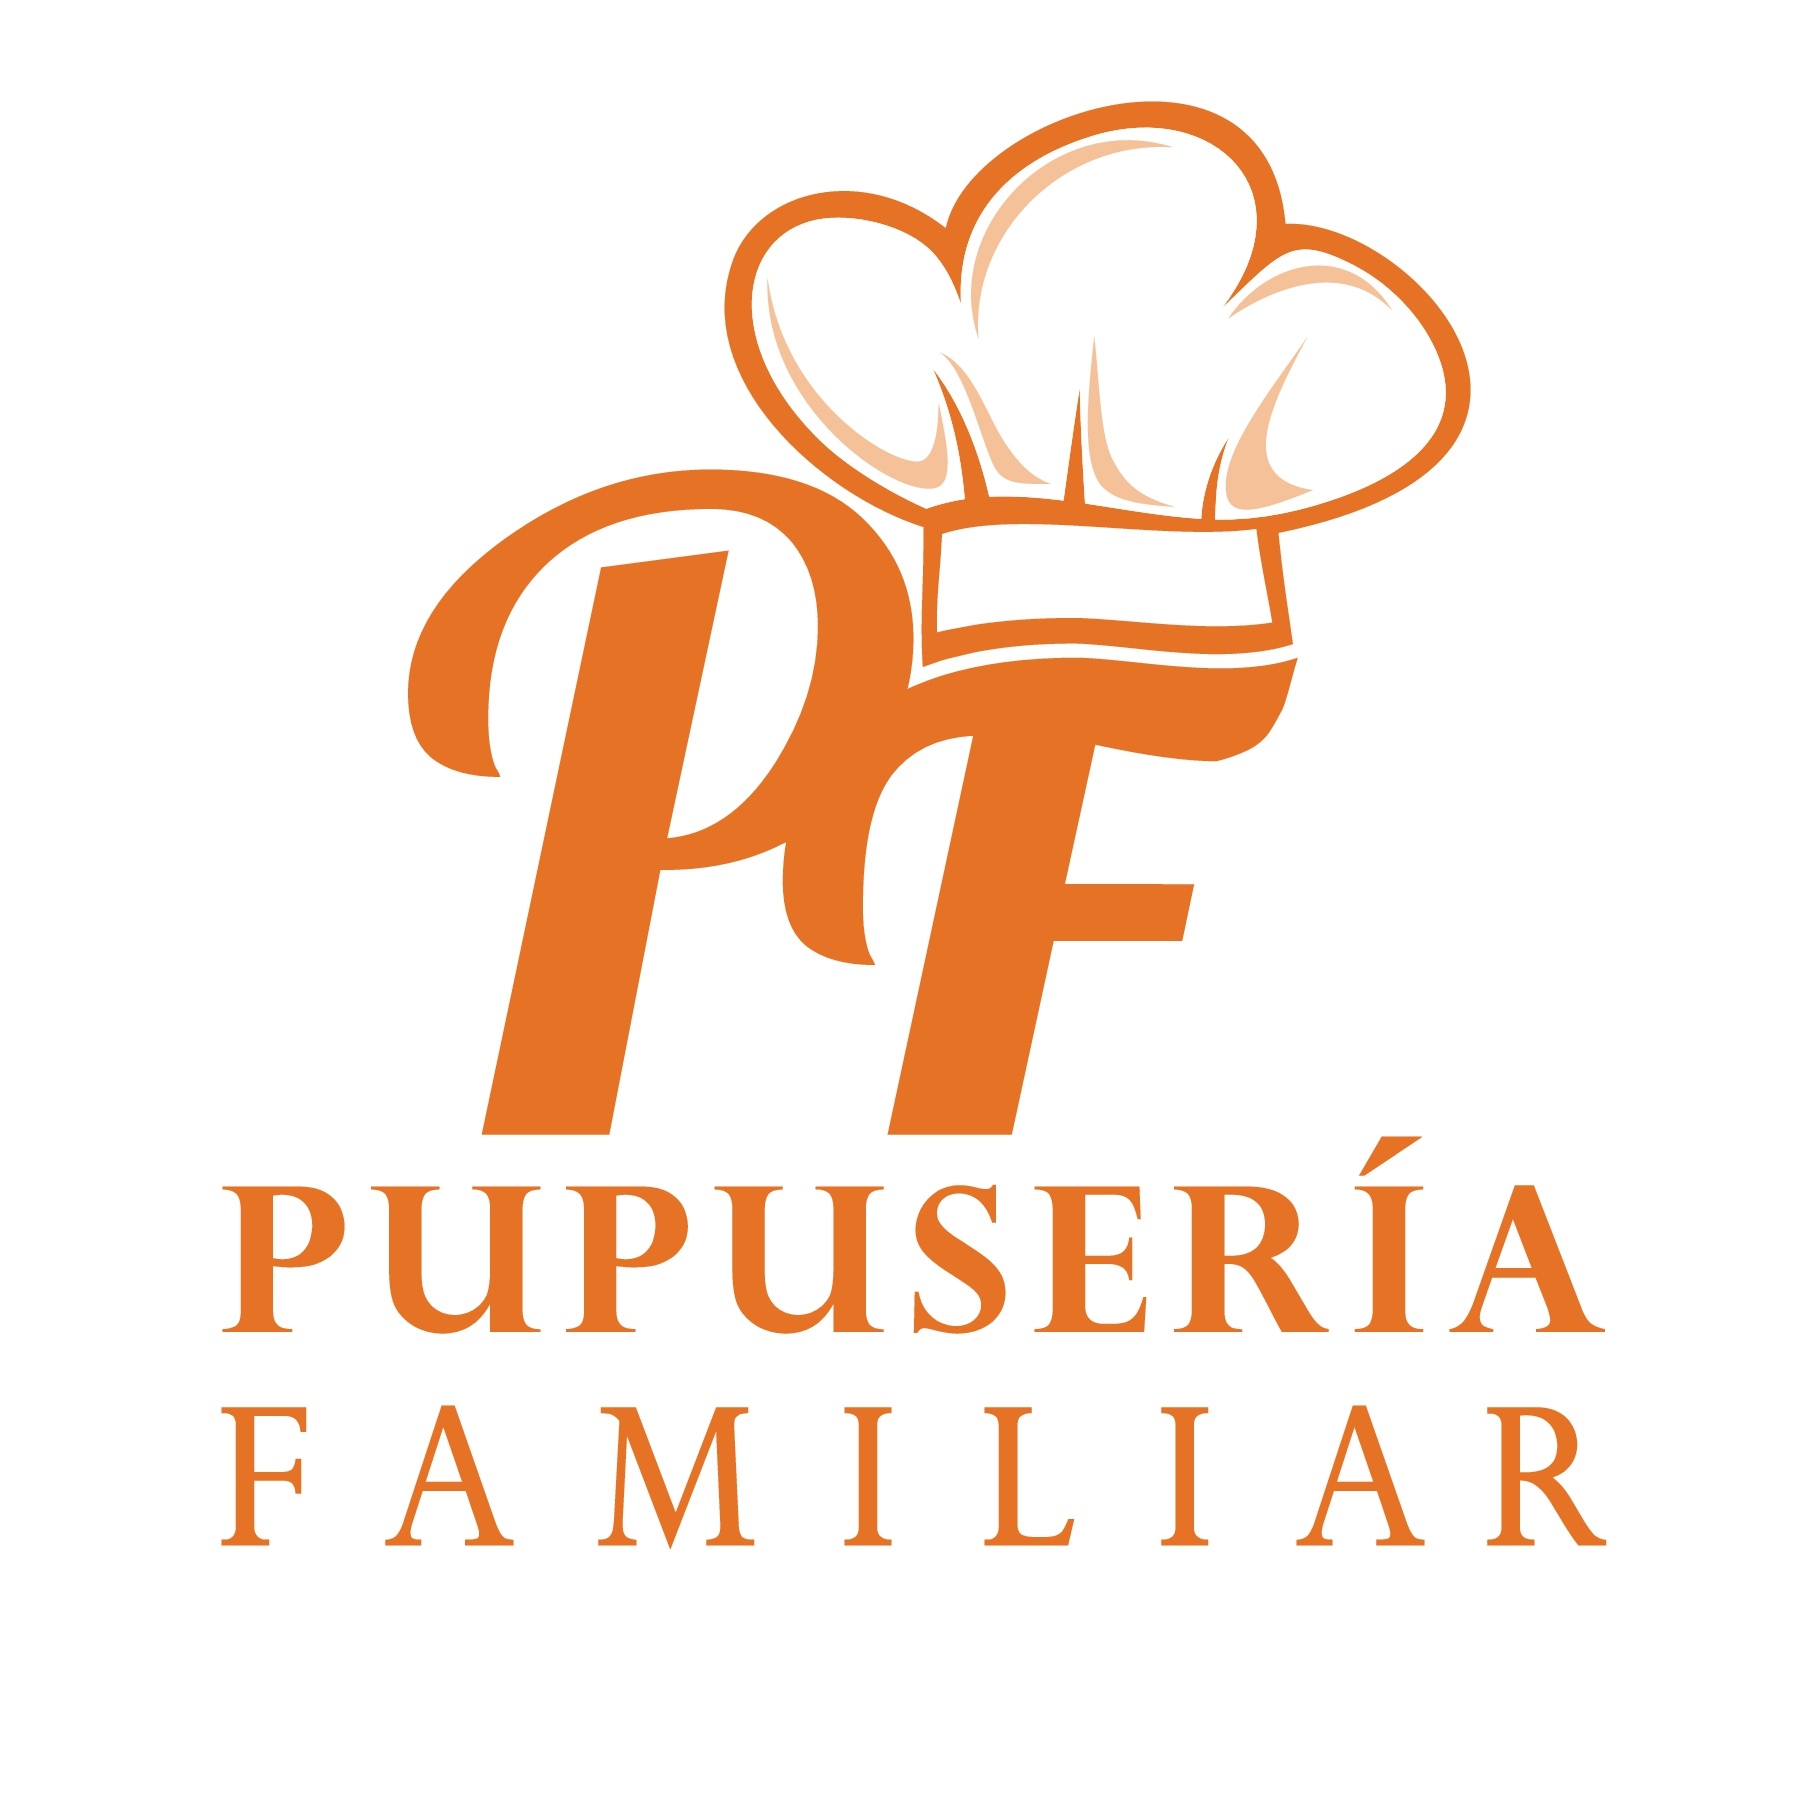 Pupusería Familiar  logo